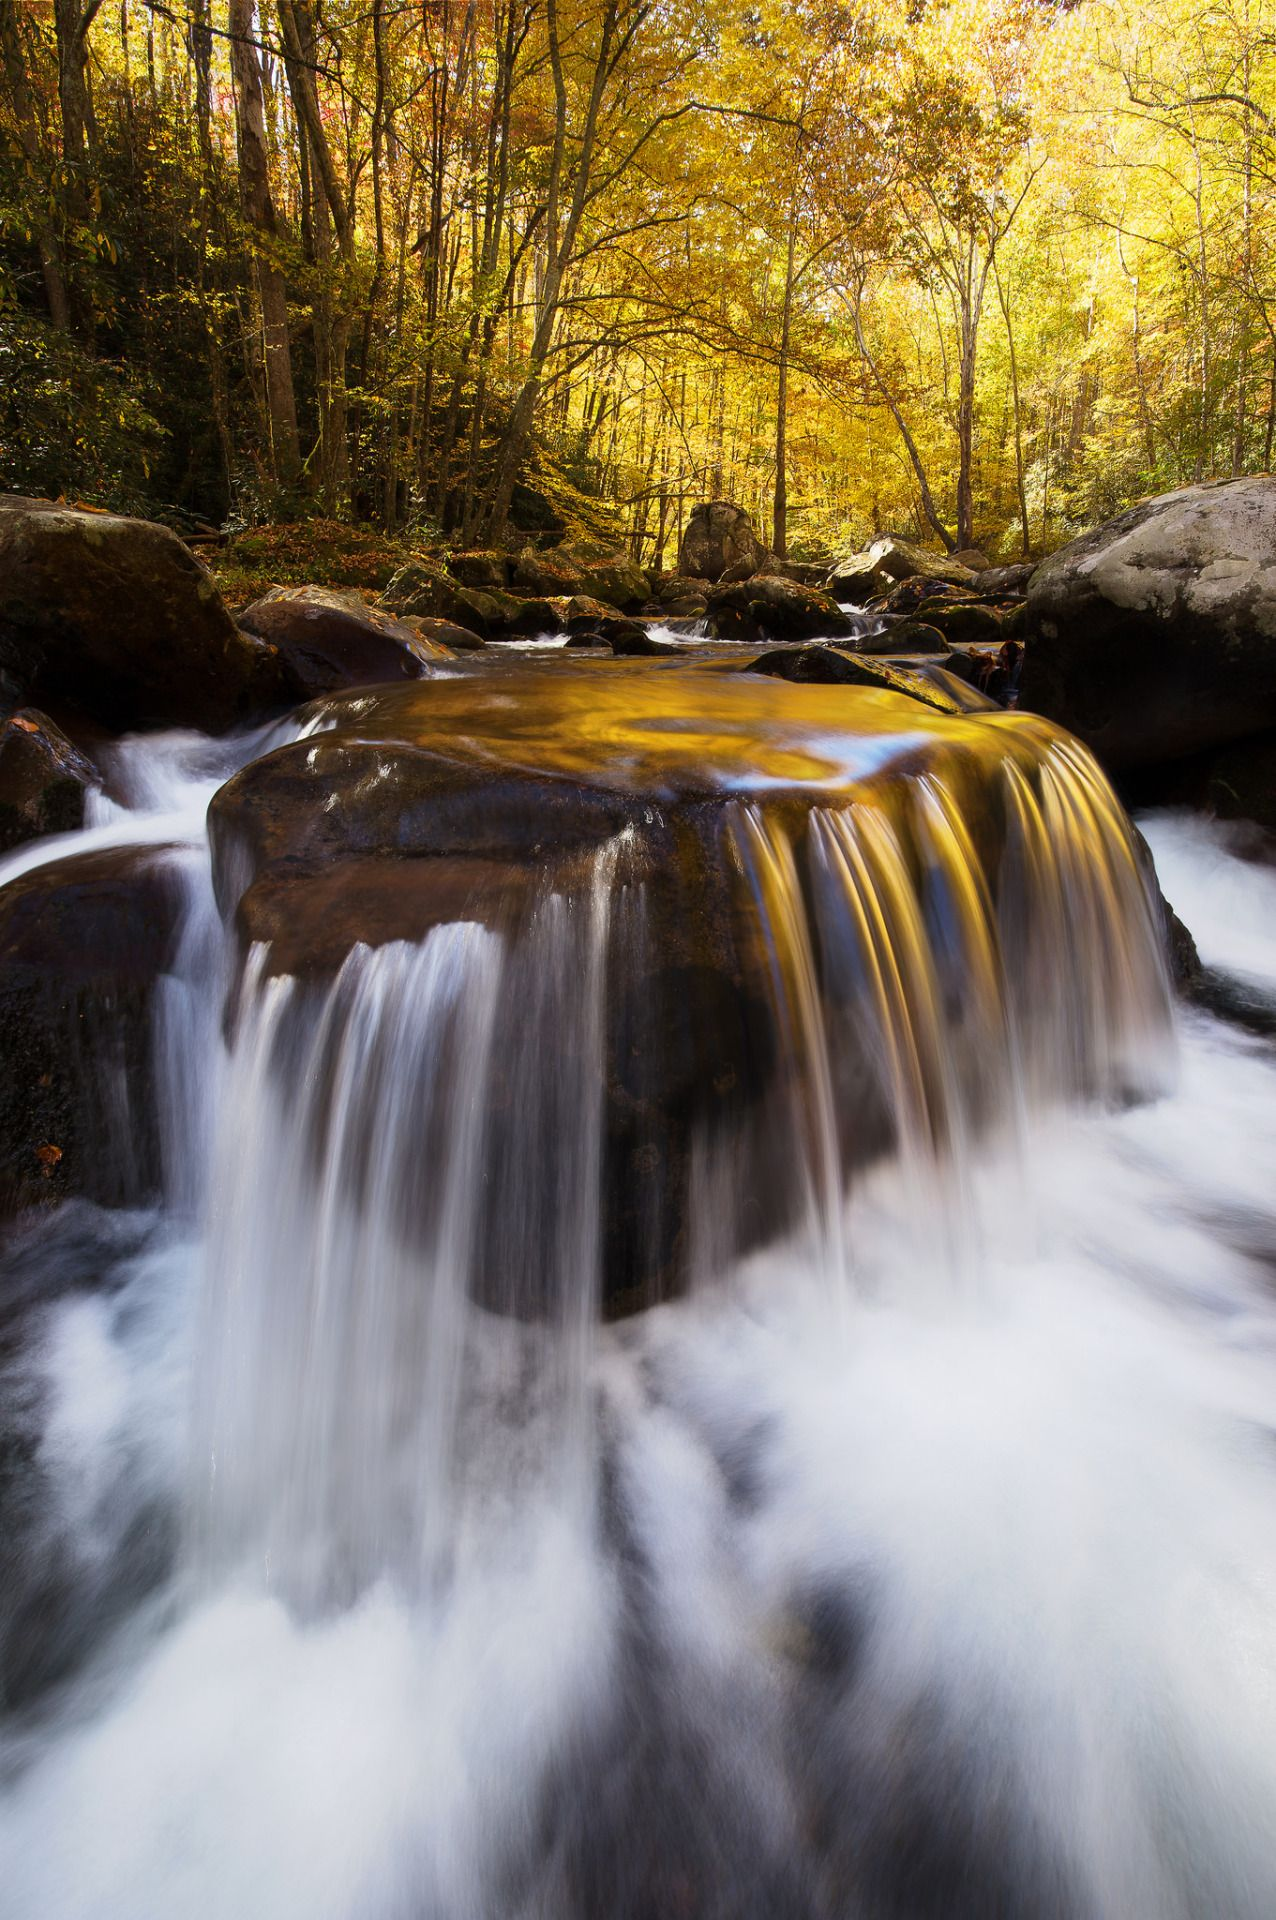 Braved some frigid waist-deep water in Great Smoky Mountains National Park (NC) for far too long to position my tripod close to this cool cascade.